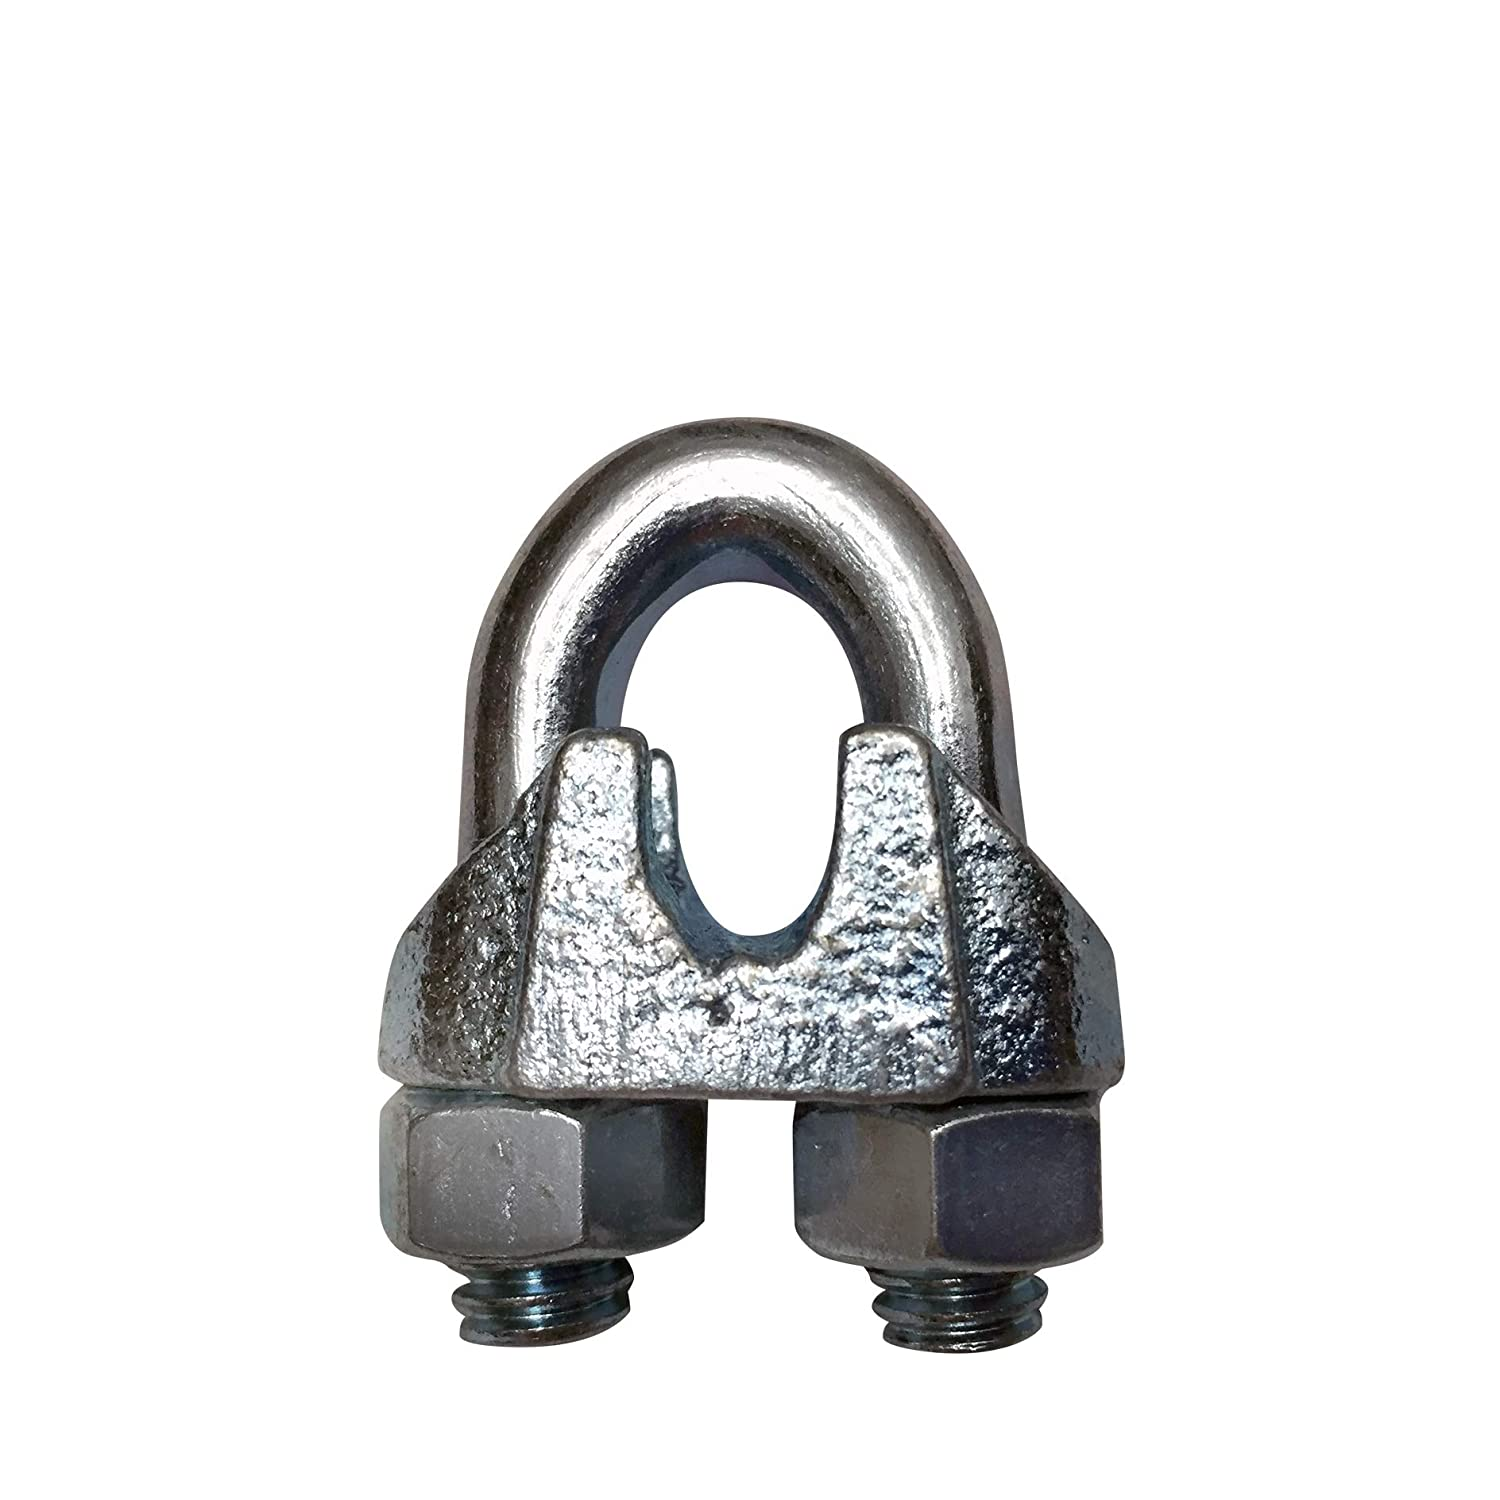 Wire Rope Clamp 24 Pack Wire Rope Clip | Wire Cable Clamps 3/16 inch ...